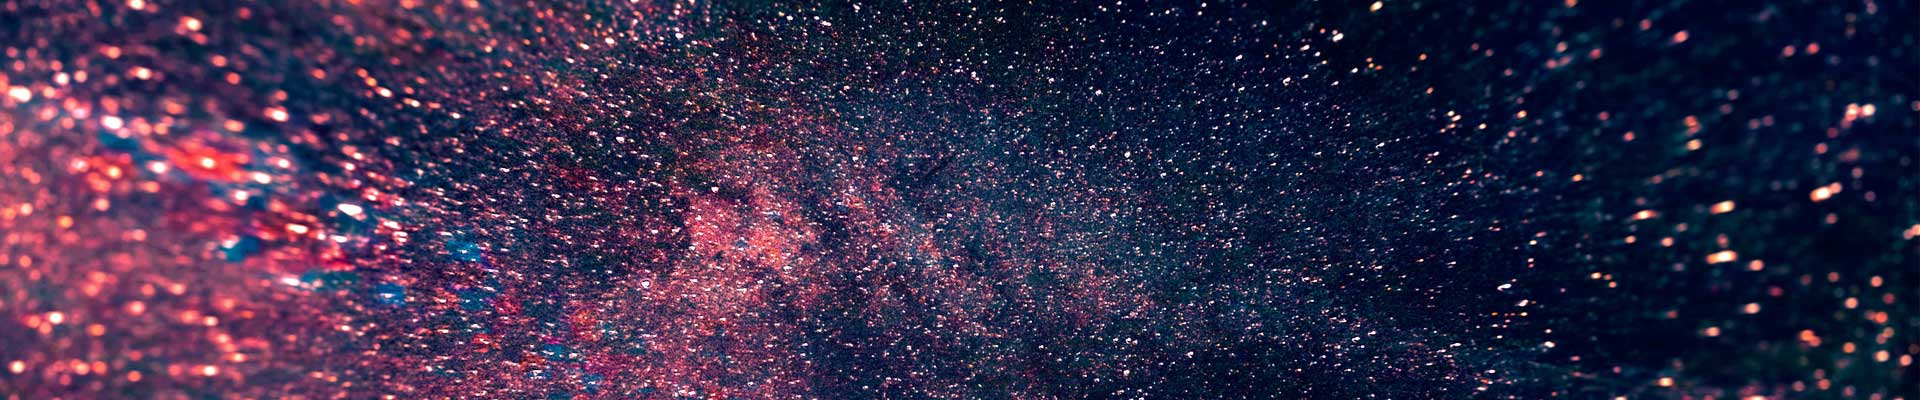 header image of space